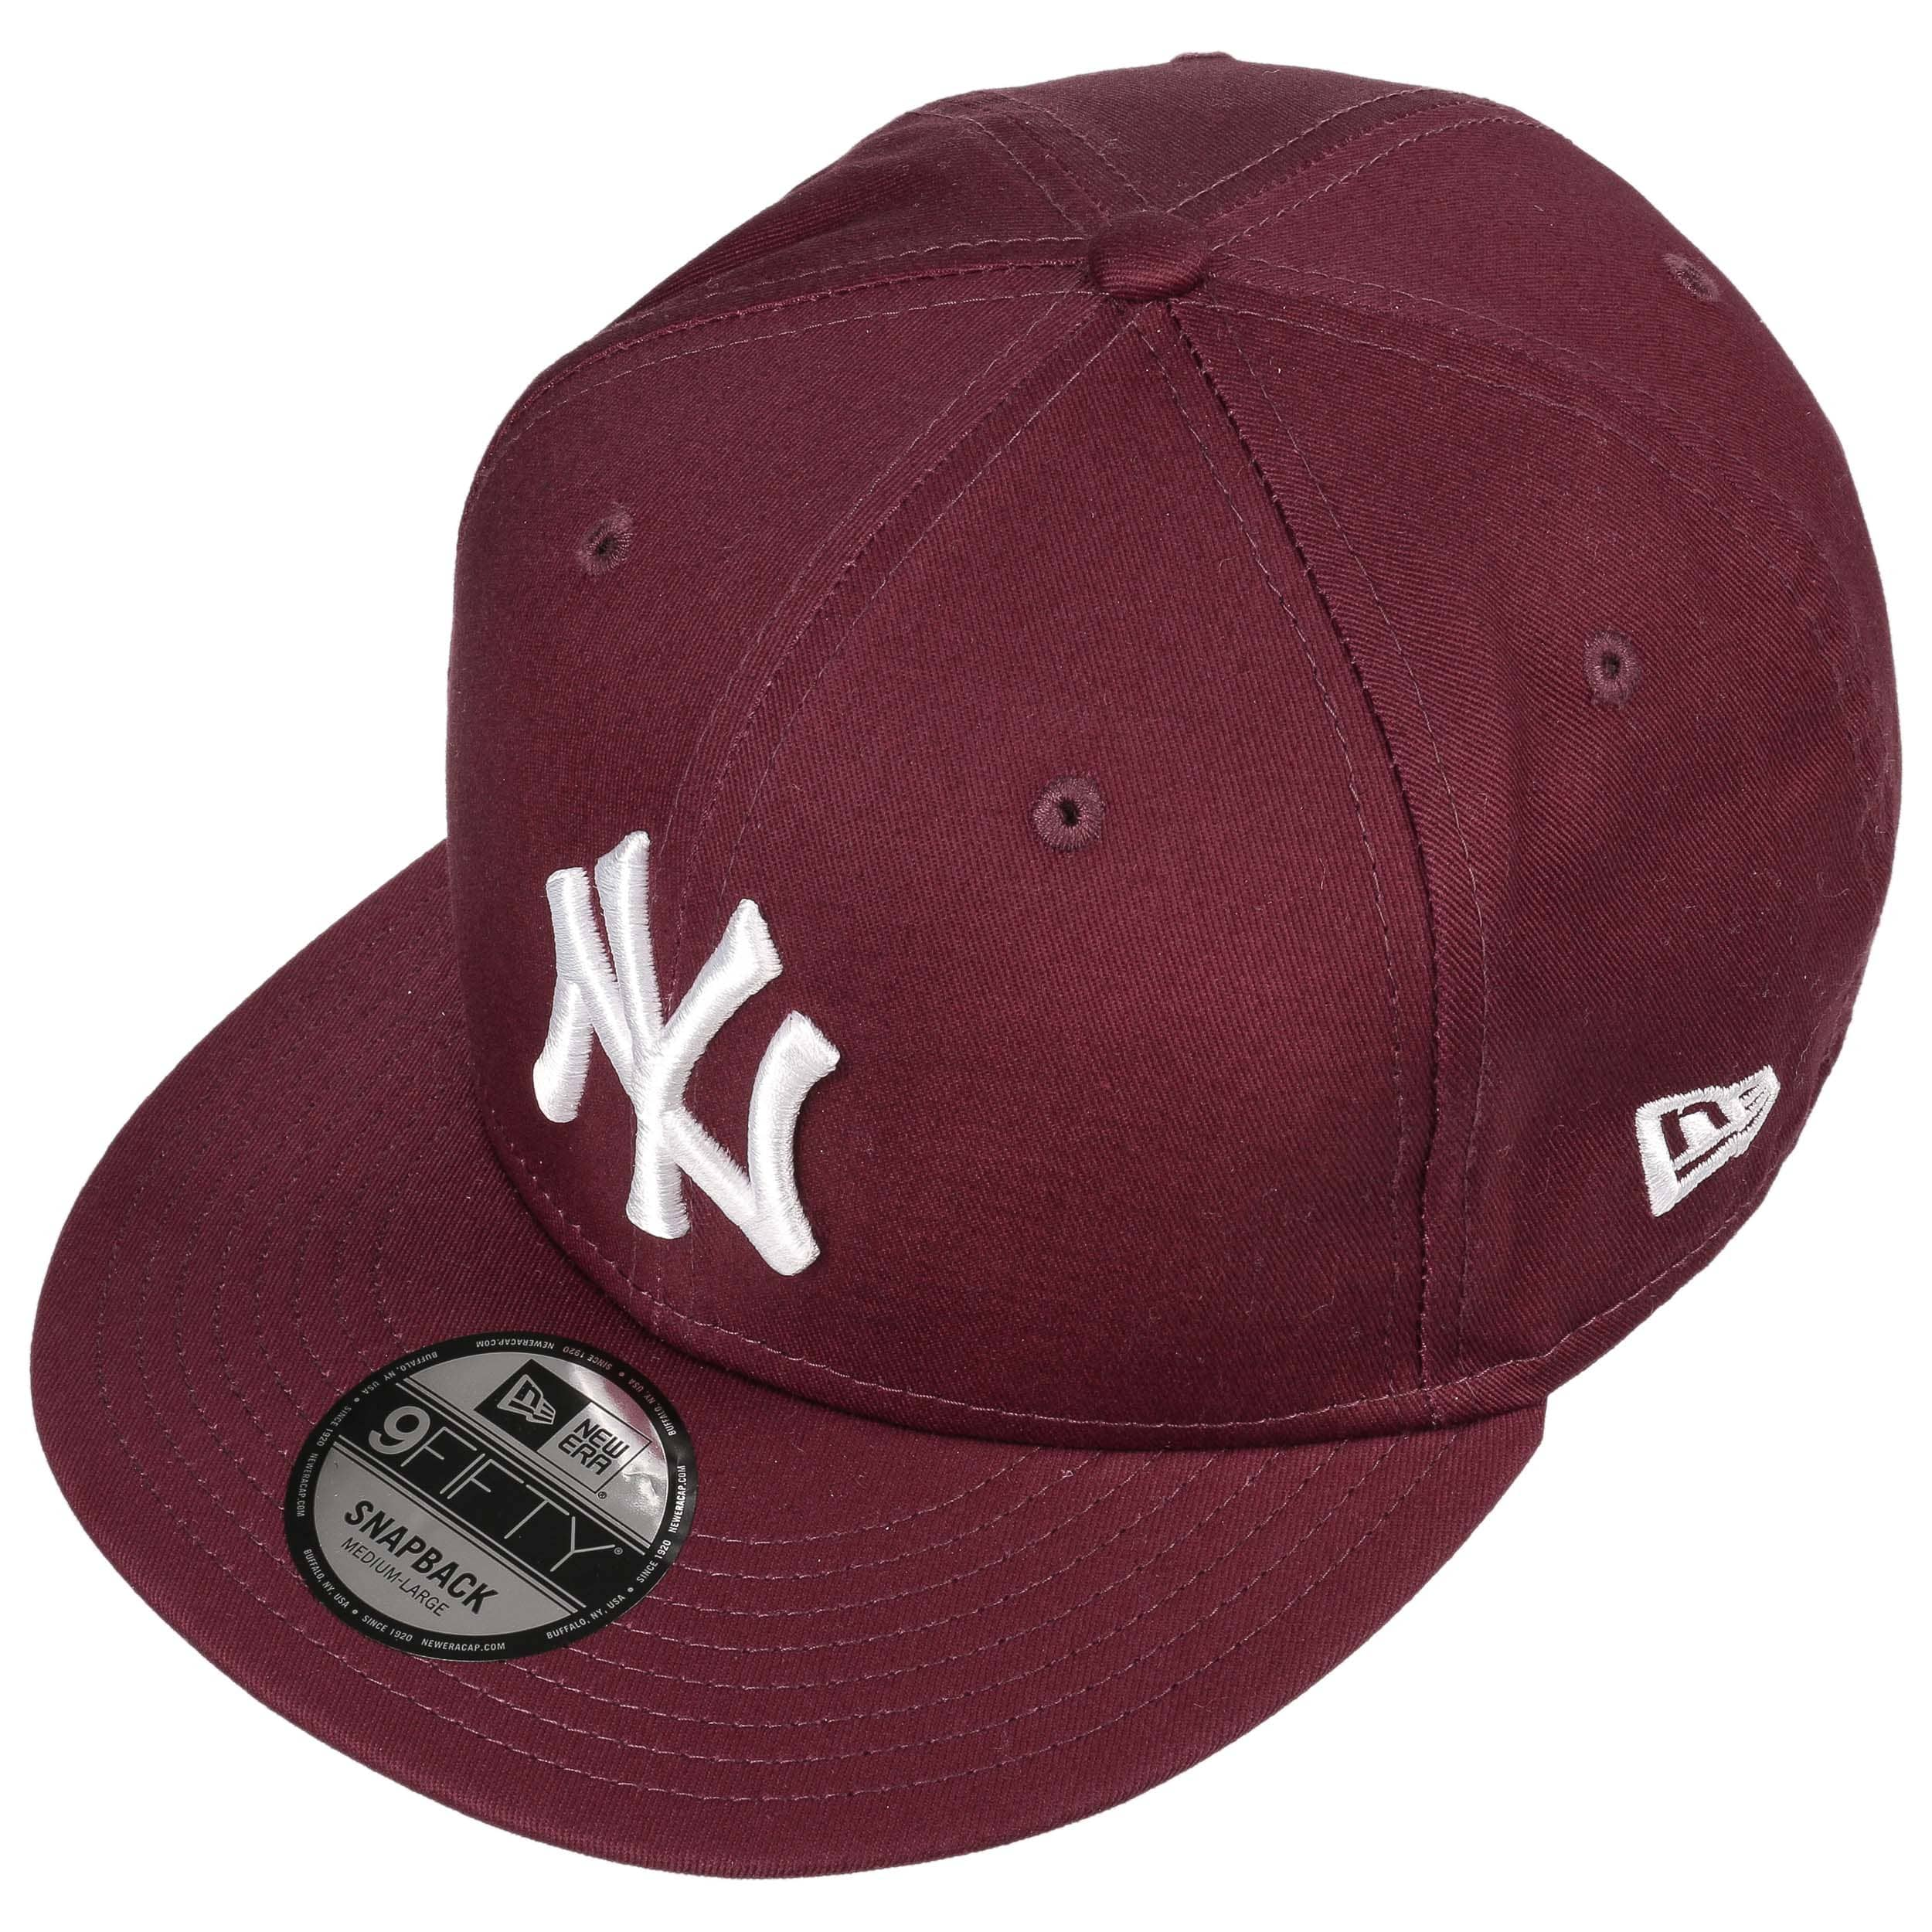 Gorra 9Fifty Ess NY Yankees by New Era - Gorras - sombreroshop.es 4de869354f3